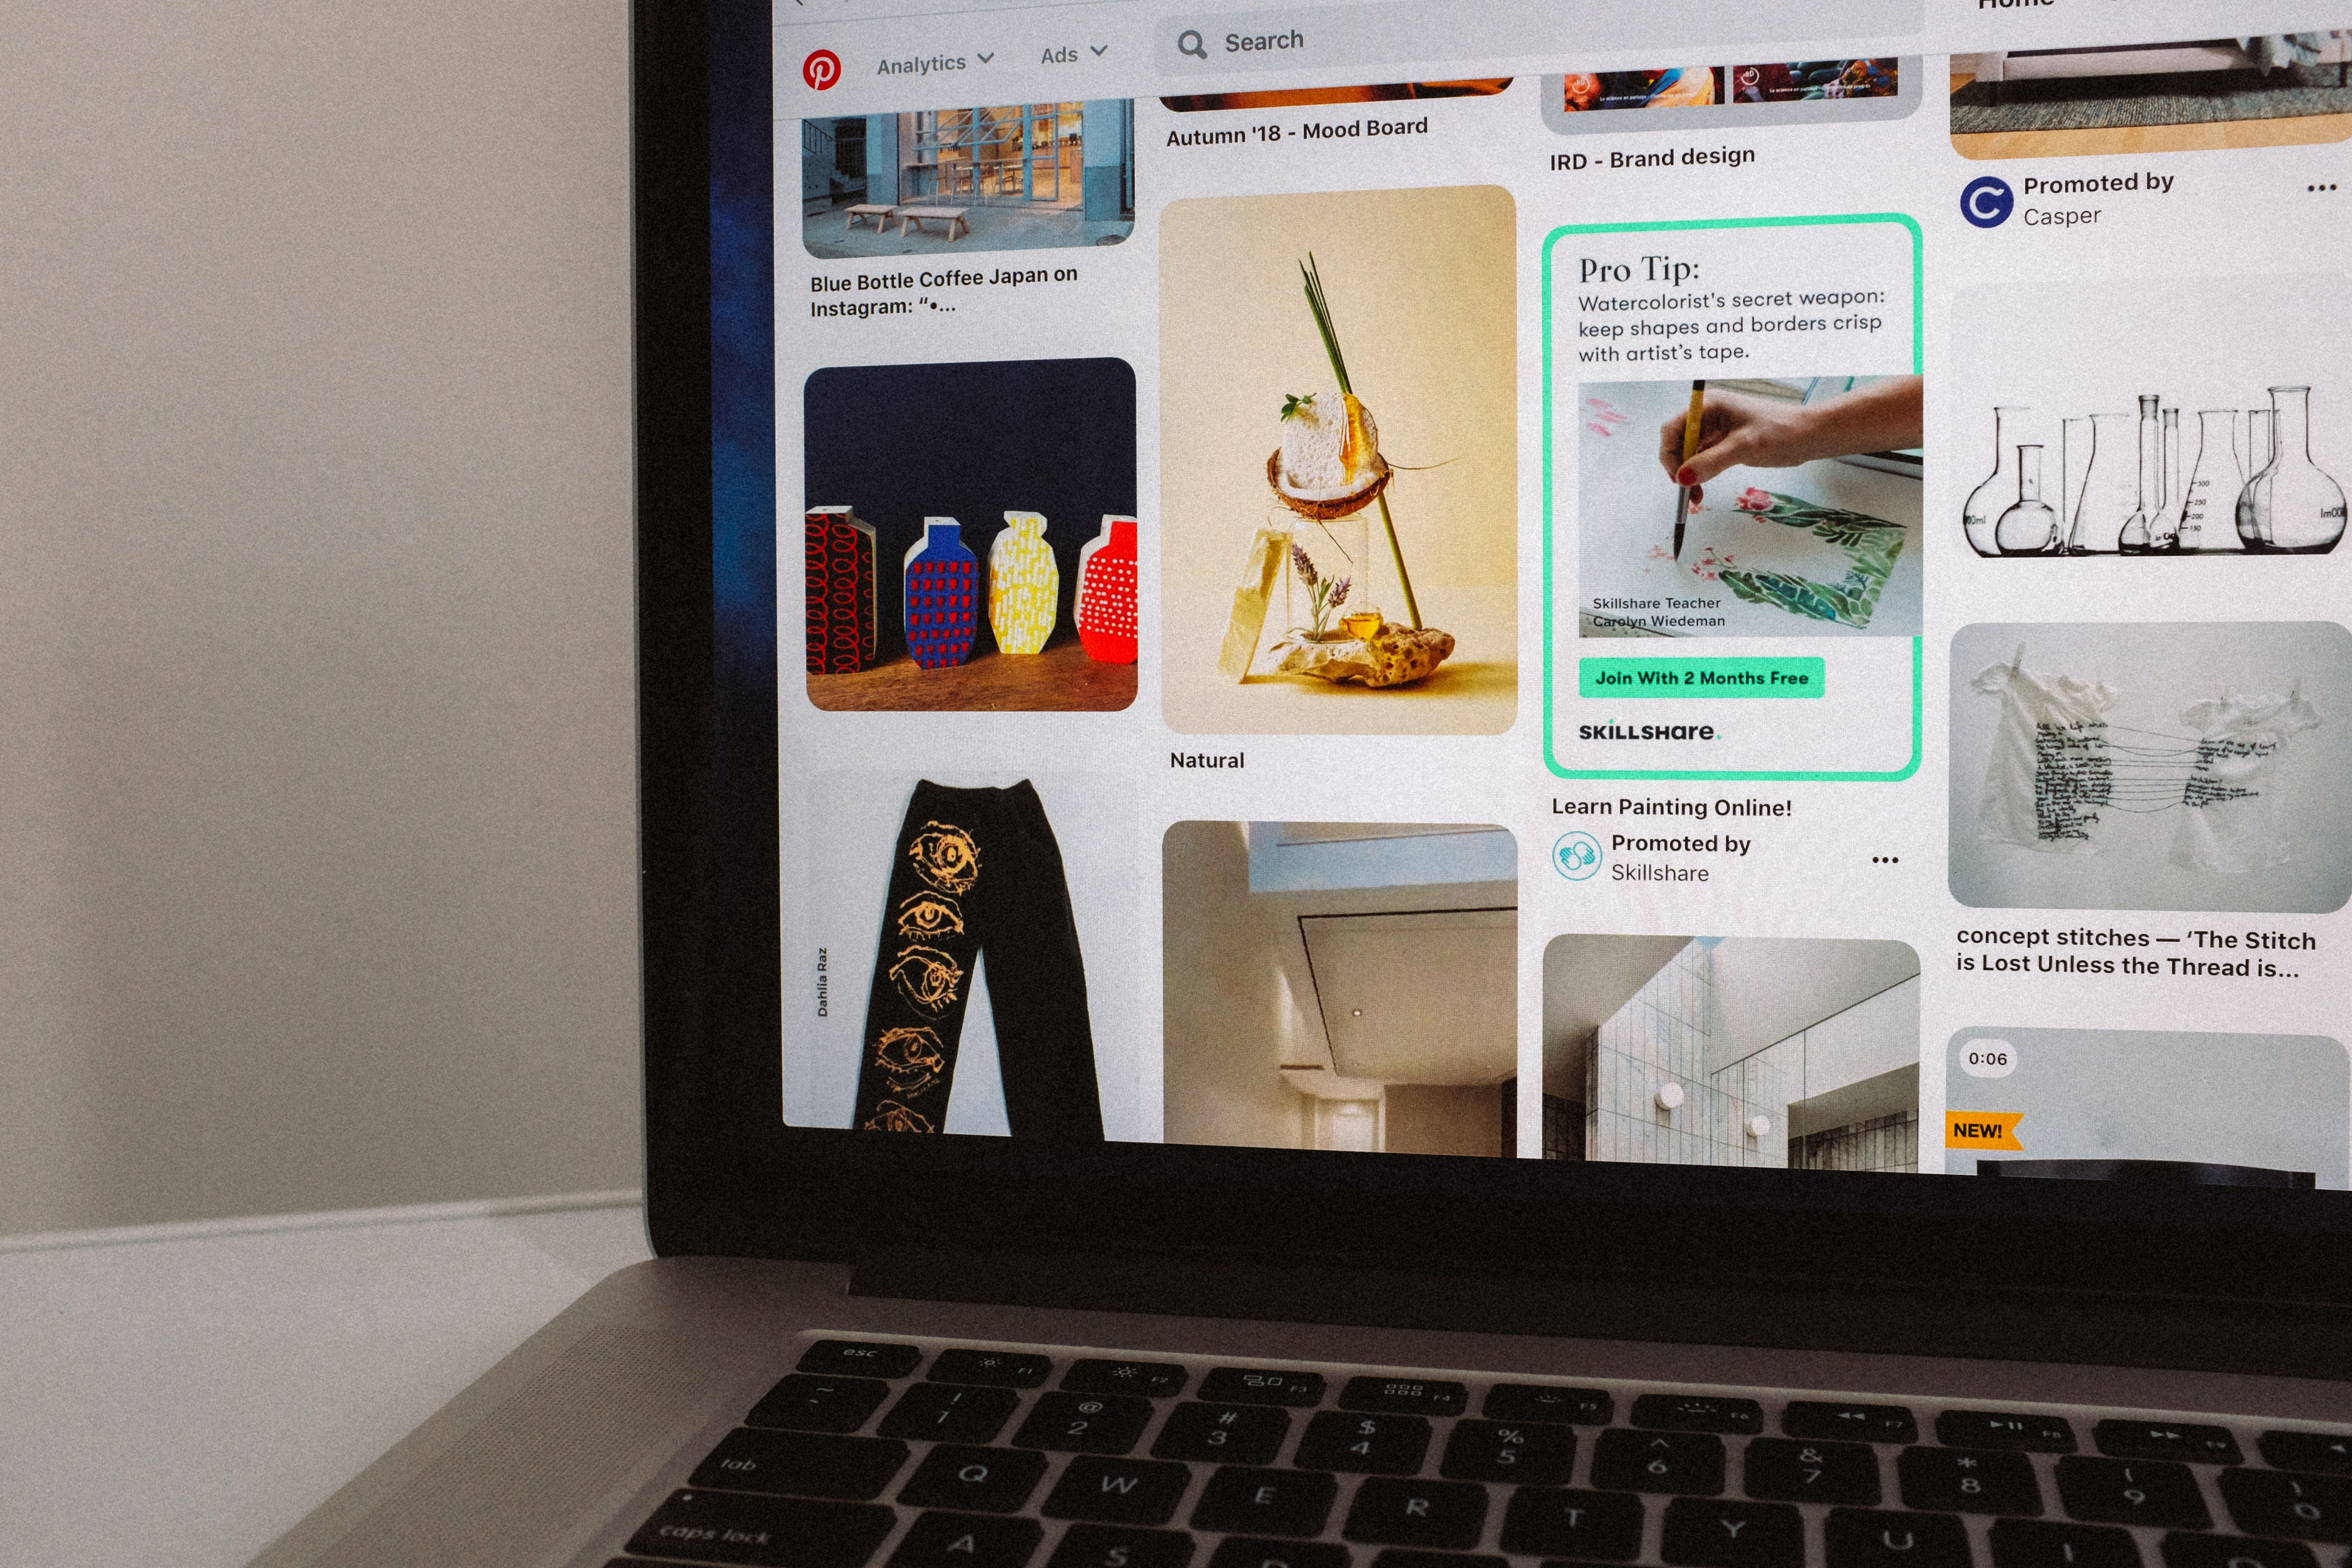 A strong Pinterest profile is key to viral success.